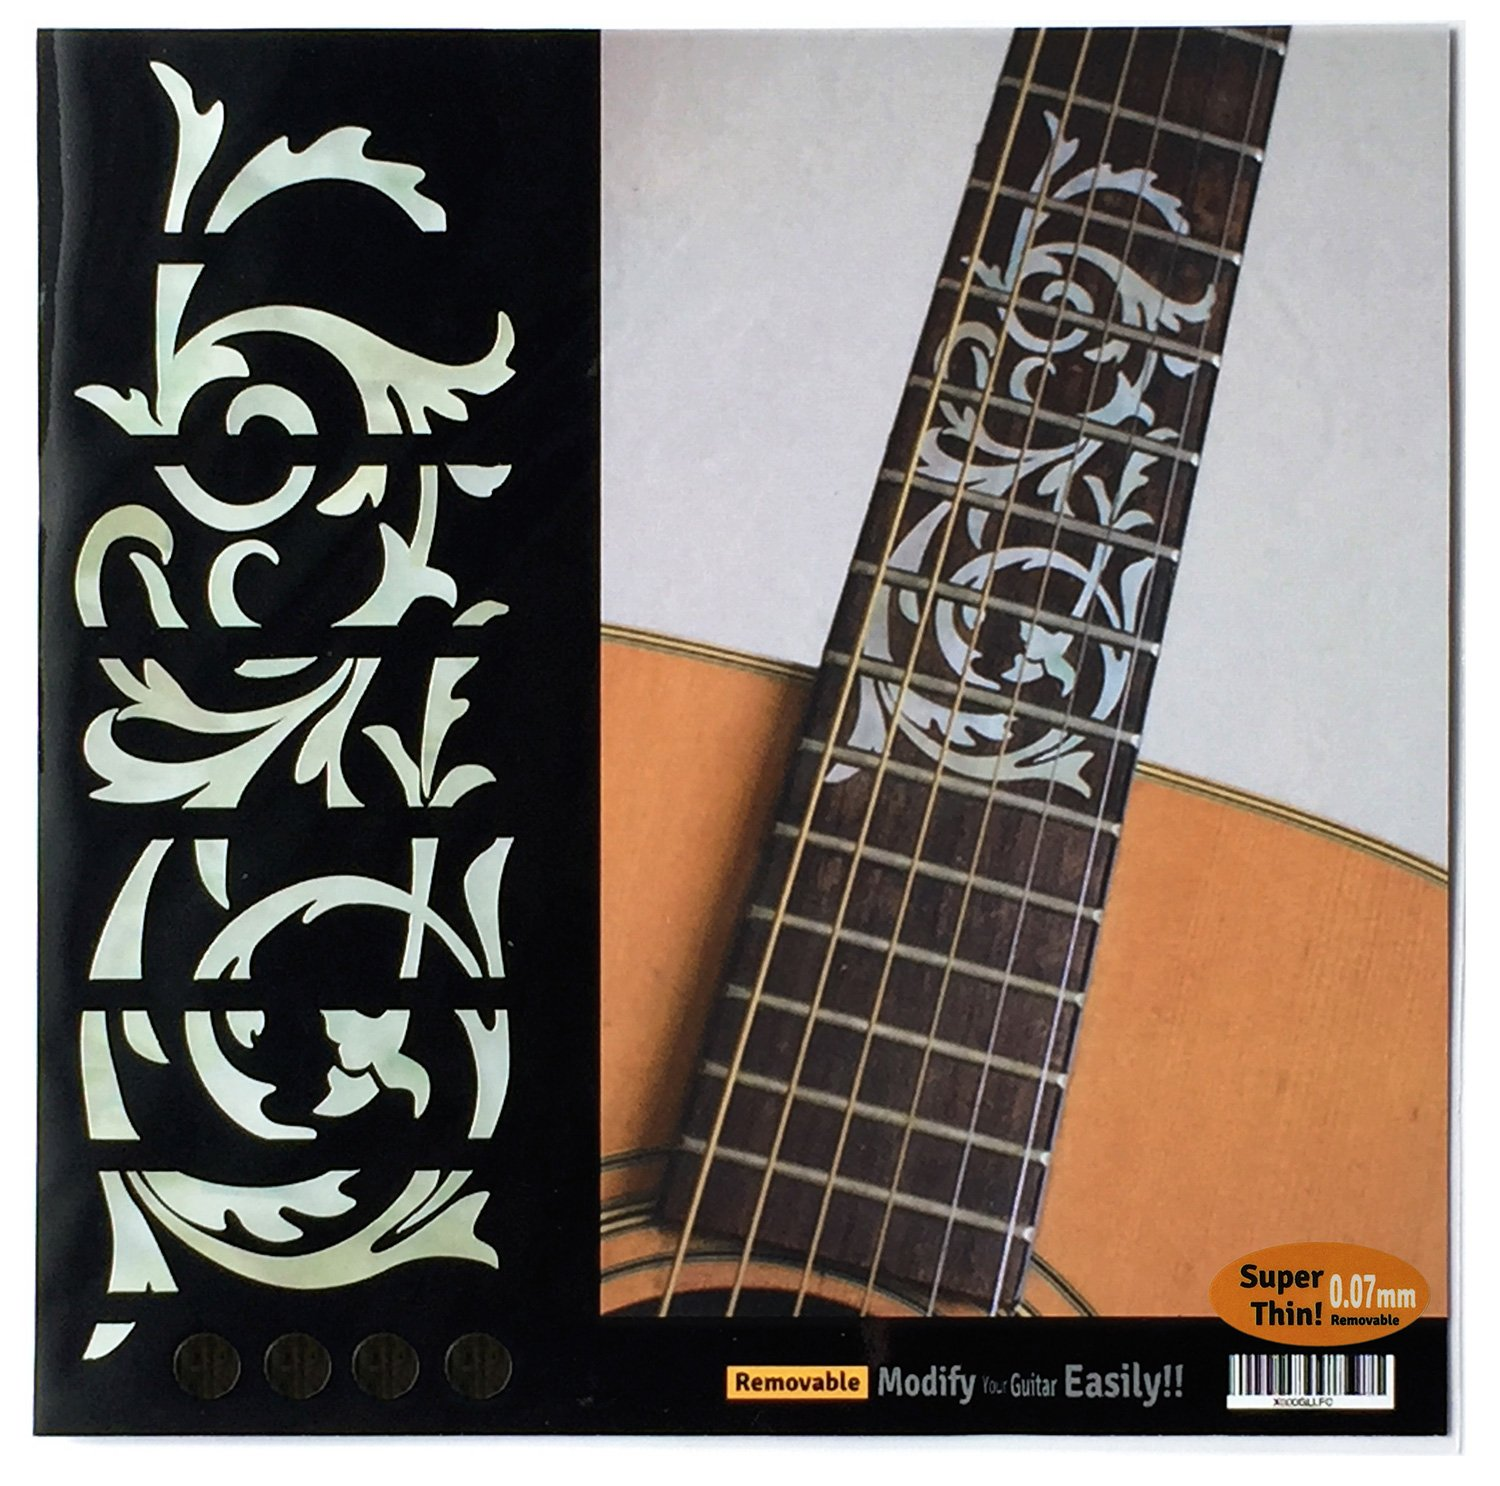 Ornamental Swirl Fretboard Markers Inlay Stickers Decals for Guitars White Pearl